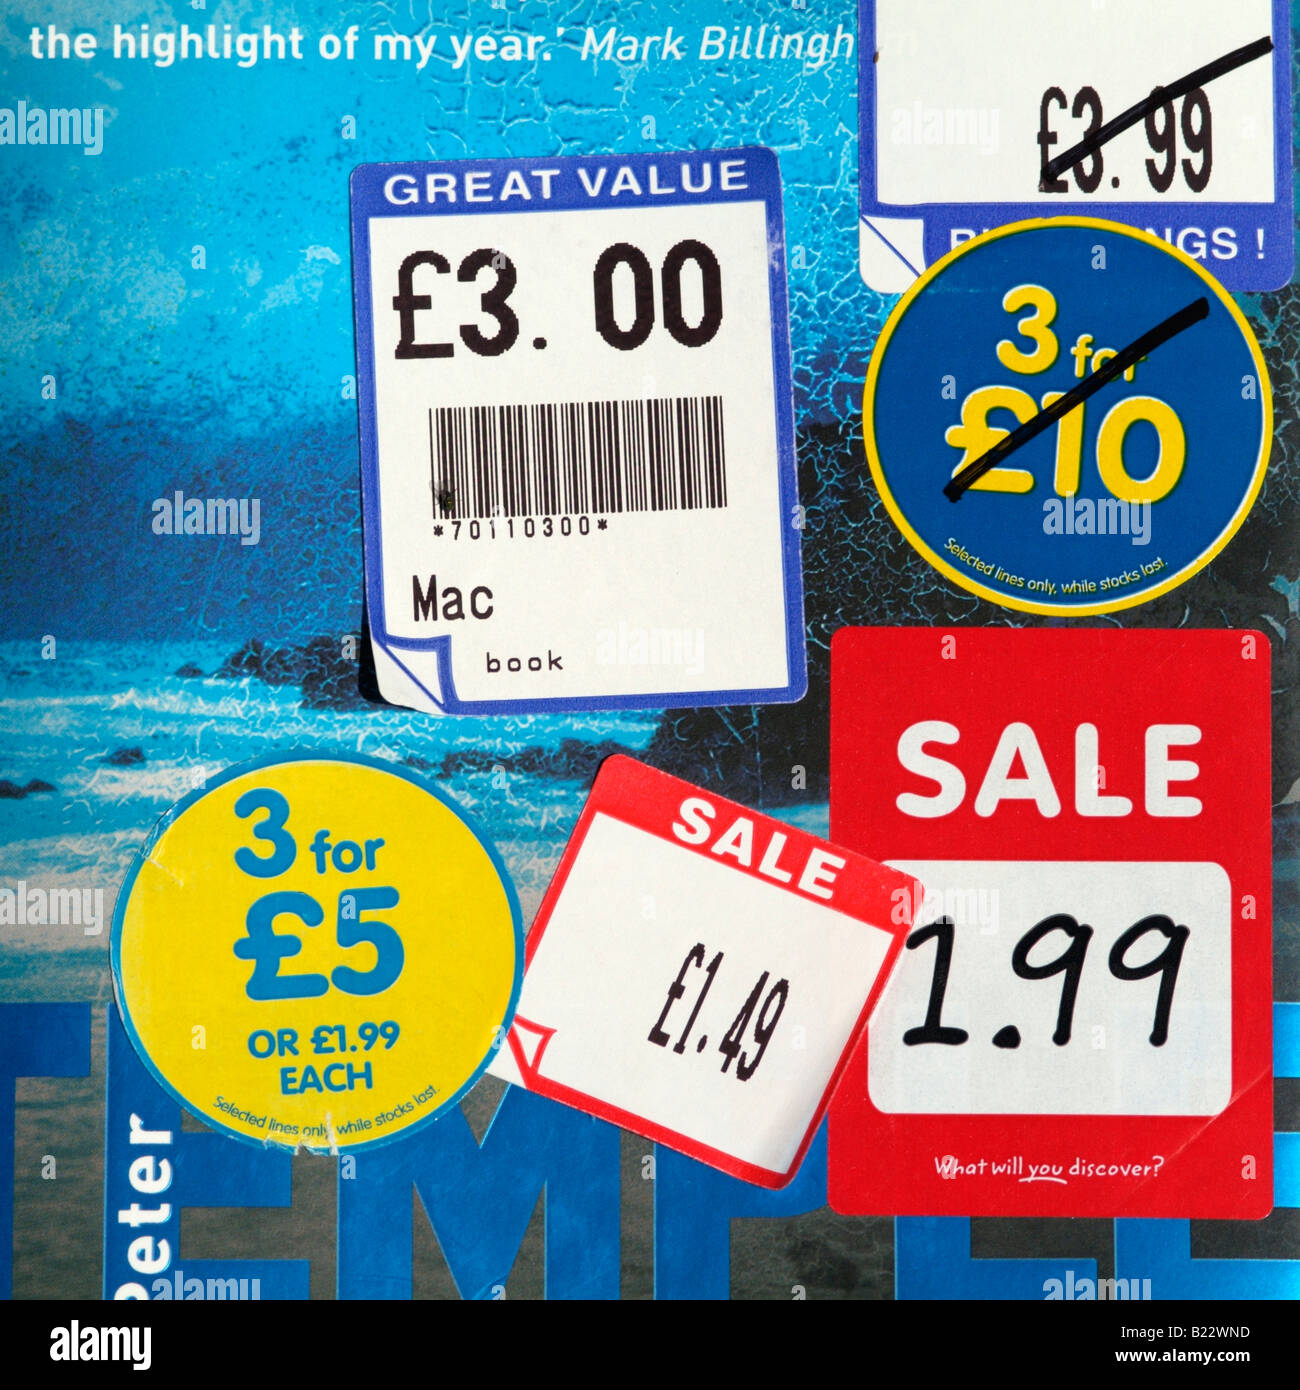 Book sale stickers advertising reduction in cost - Stock Image